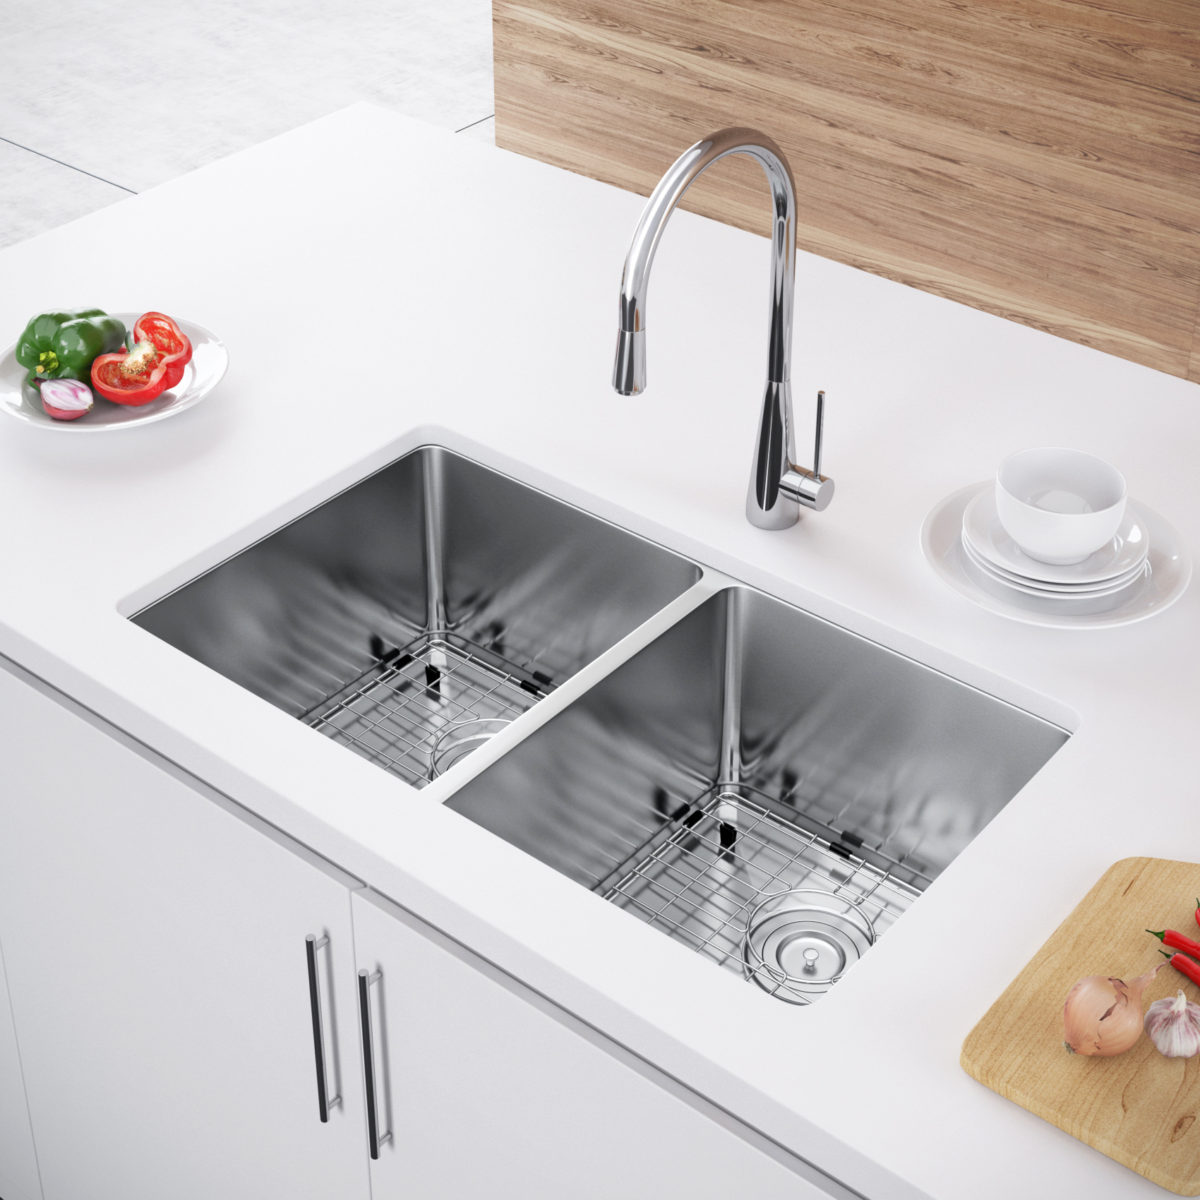 undermount double kitchen sink omega cabinets exclusive heritage 31 x 18 bowl 50